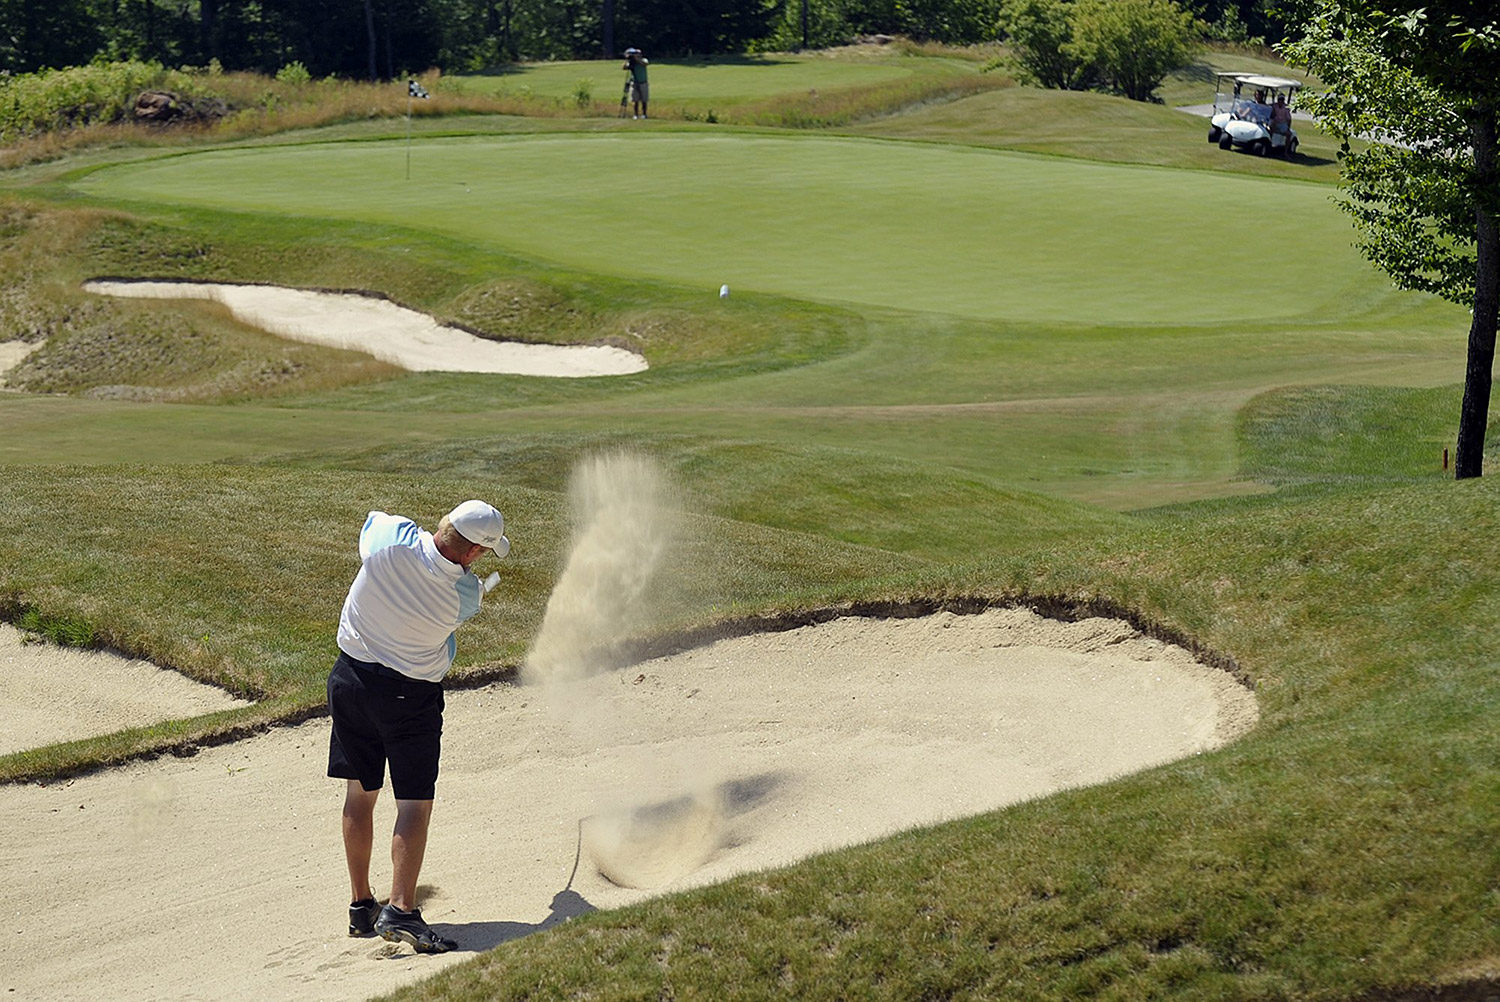 Former owner of Sunday River golf course still selling memberships, lawsuit says